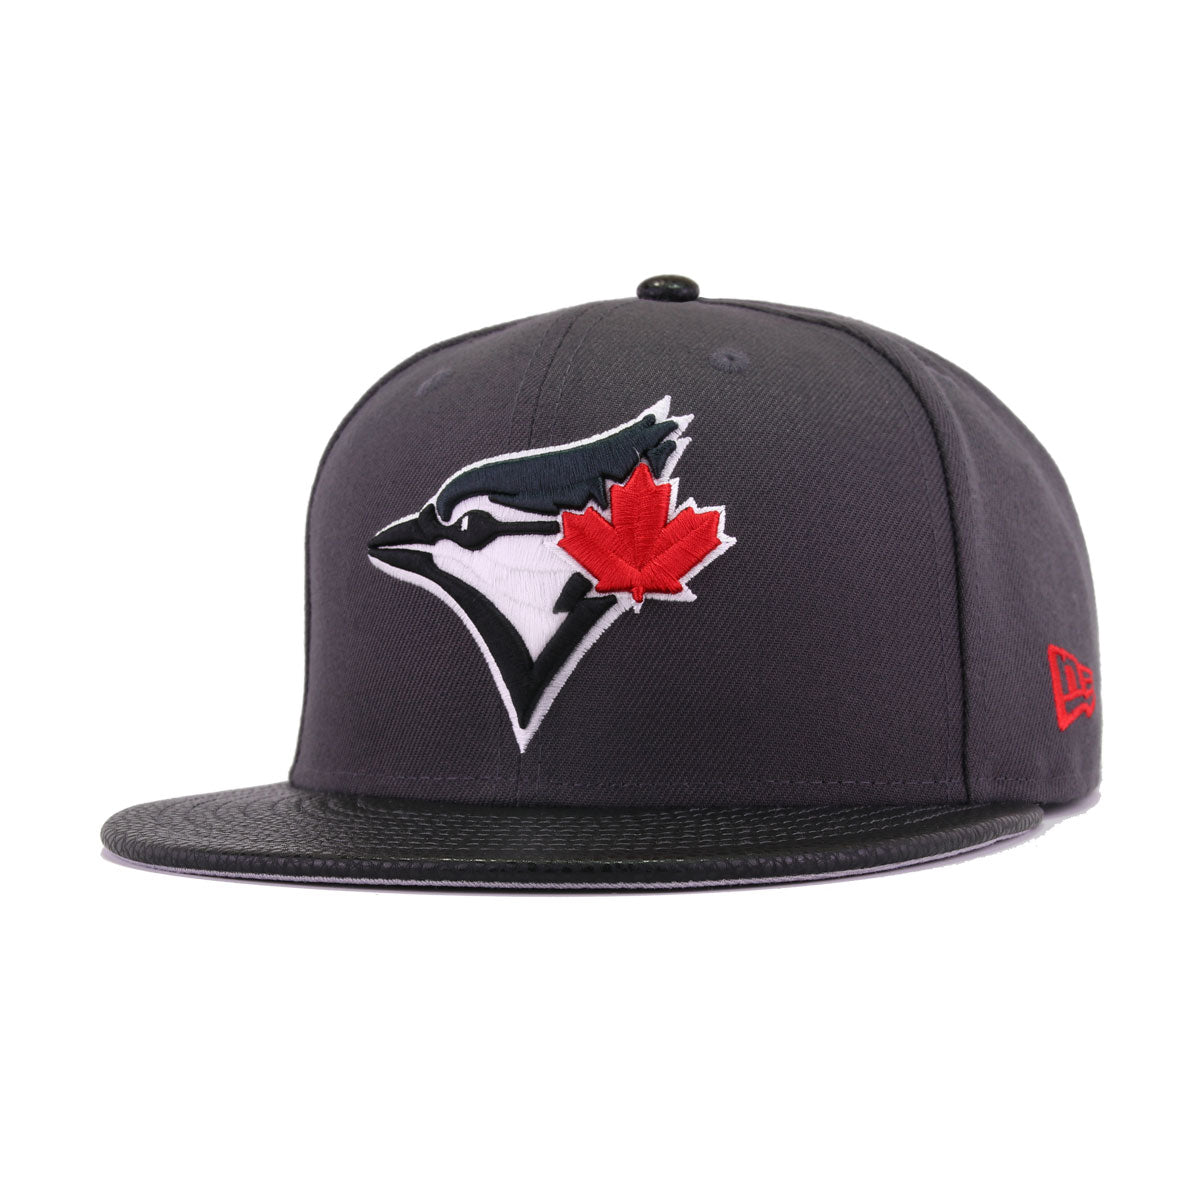 Toronto Blue Jays Graphite Black Pebbled Leather Scarlet New Era 59Fifty Fitted